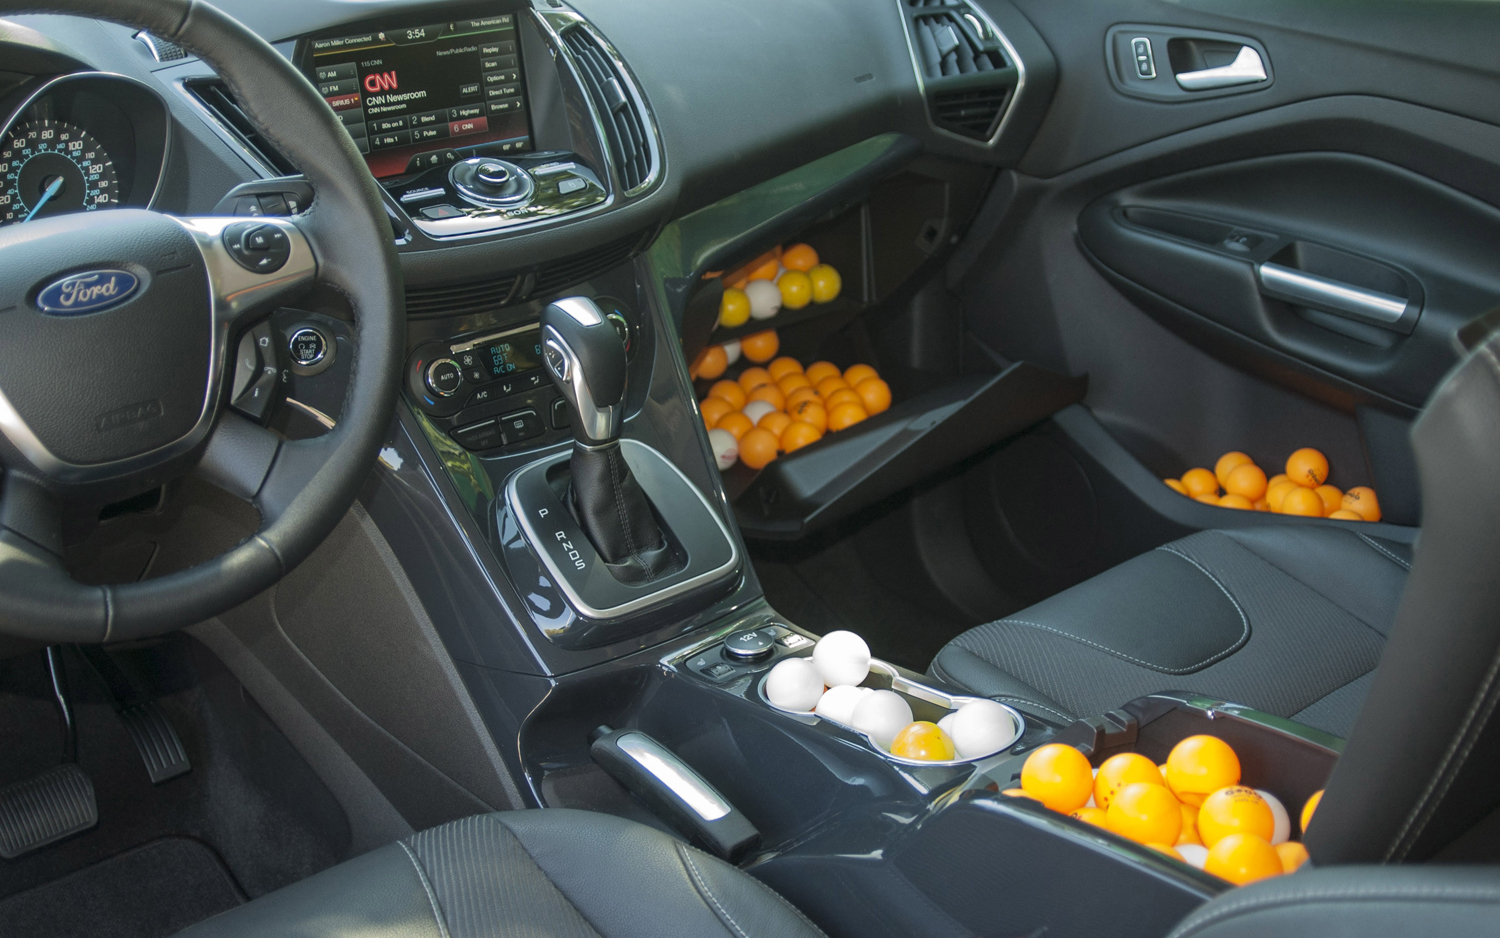 2013 ford escape interior spaces measured with pingpong balls